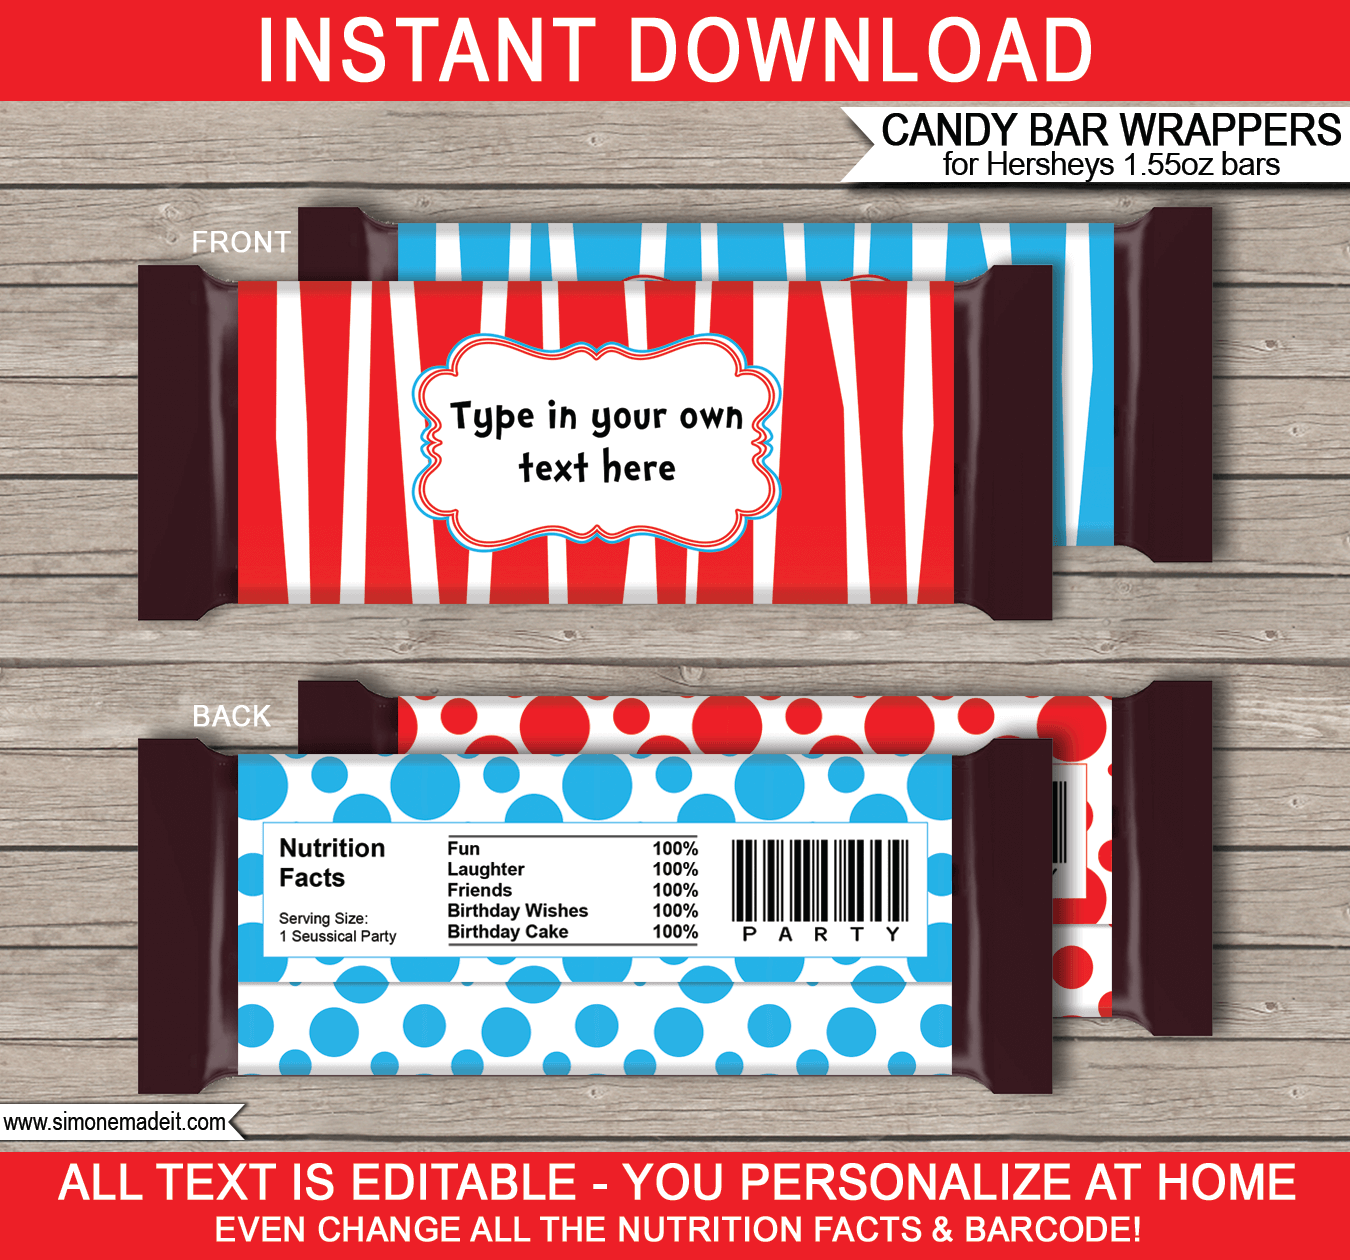 Dr Seuss Hershey Candy Bar Wrappers | Birthday Party Favors | Personalized Candy Bars | Editable Template | INSTANT DOWNLOAD $3.00 via simonemadeit.com